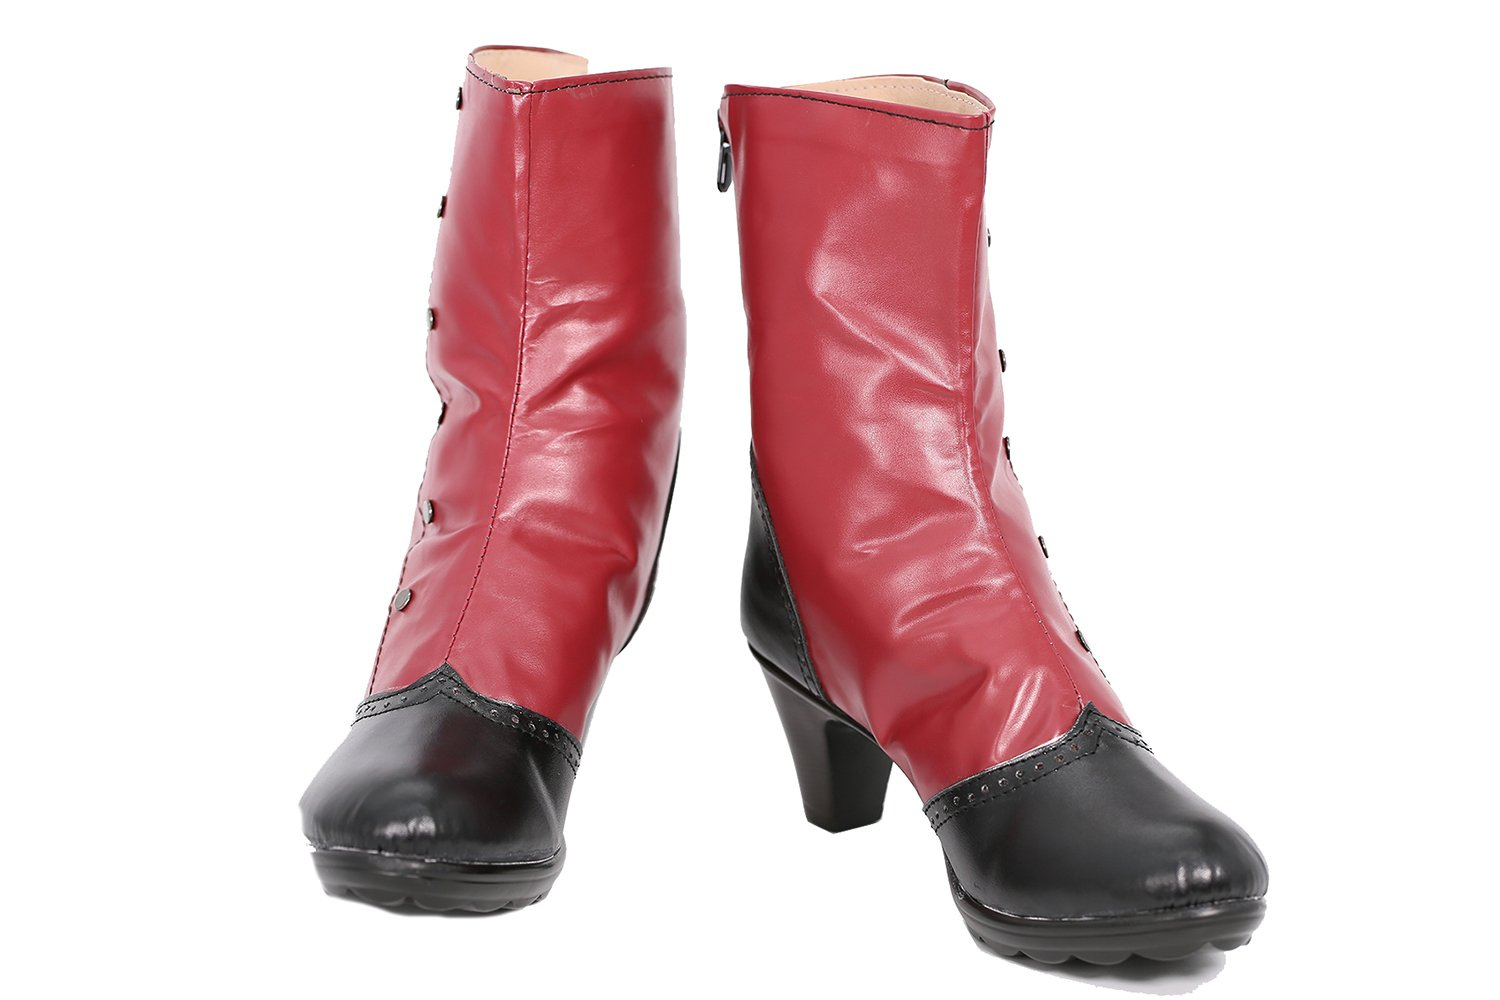 DP Boots Shoes Cosplay Womens Red PU Shoes Costume Accessories Halloween Props